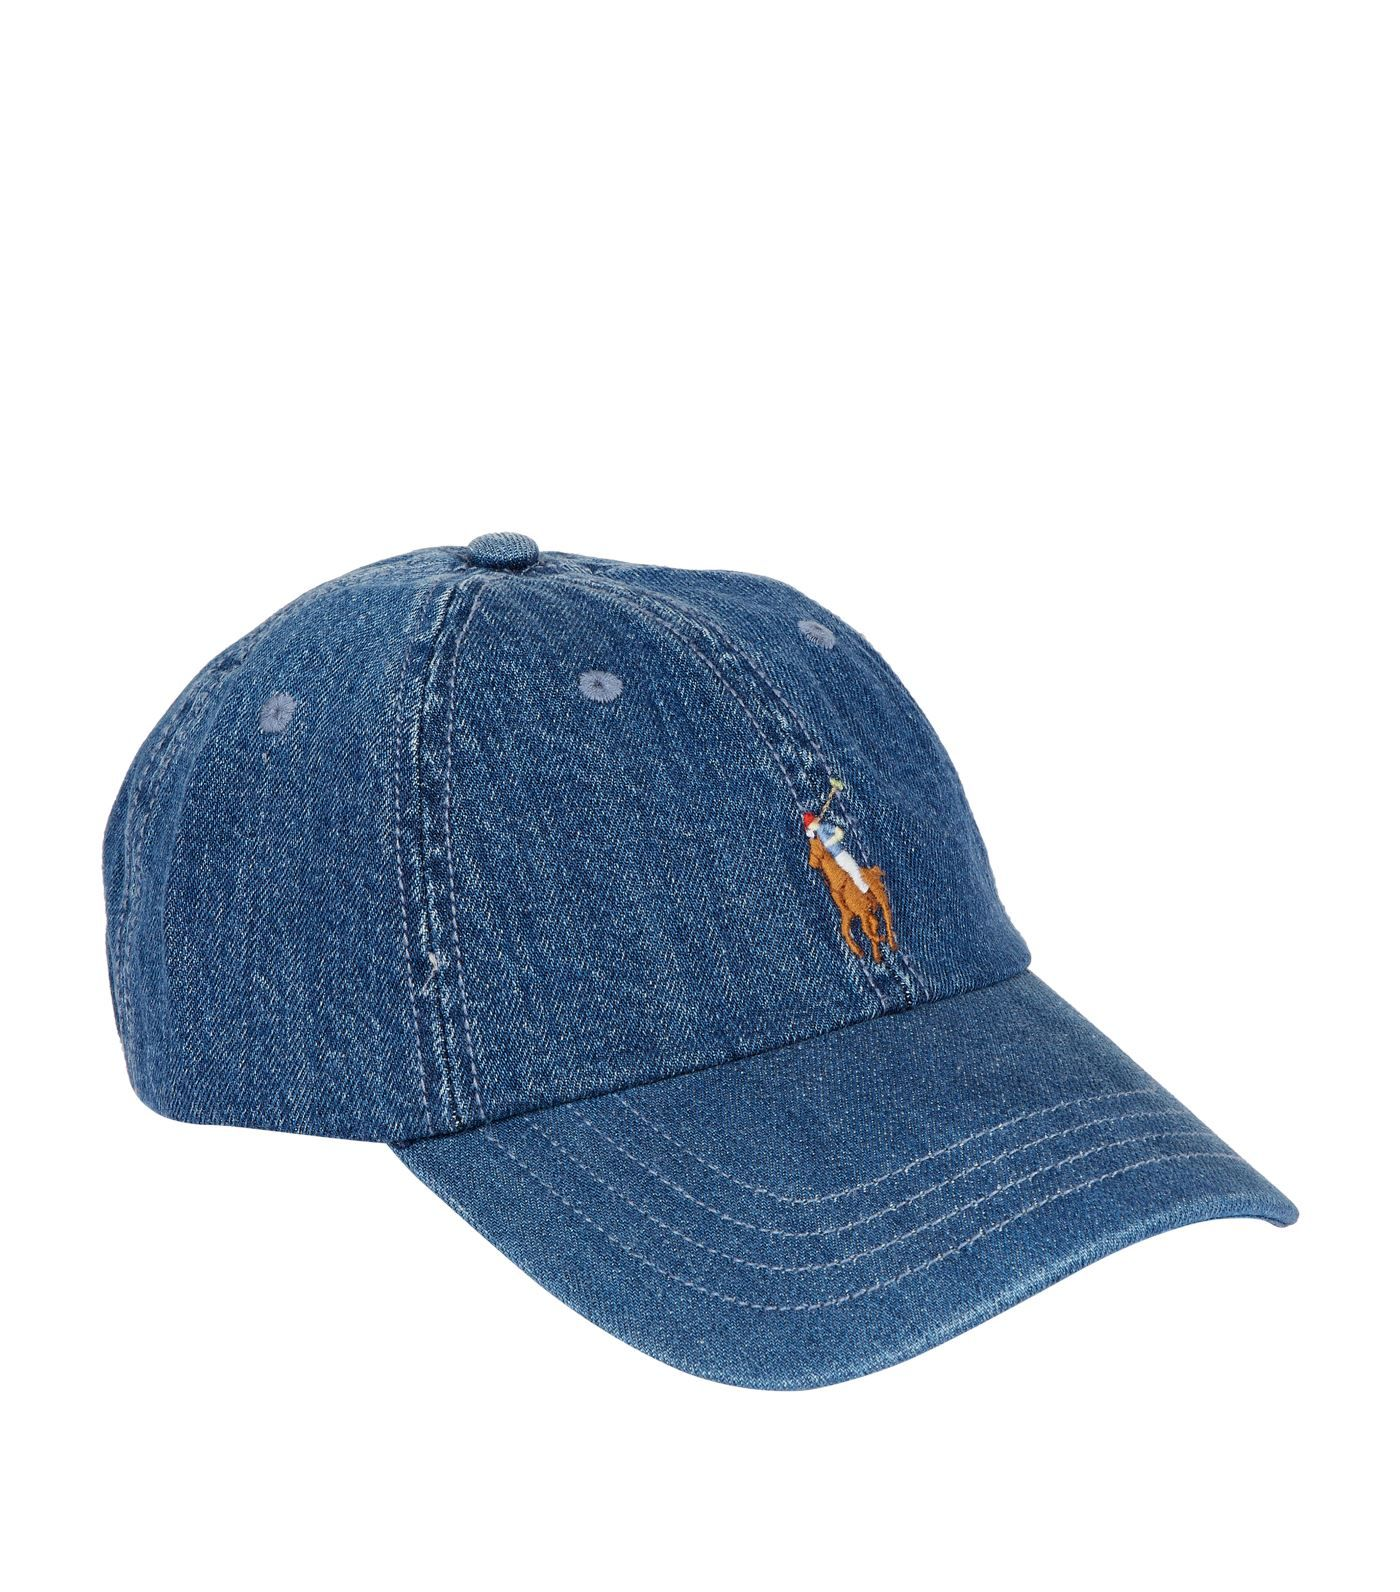 POLO RALPH LAUREN DENIM POLO PONY CAP.  poloralphlauren  b82d795f21ec